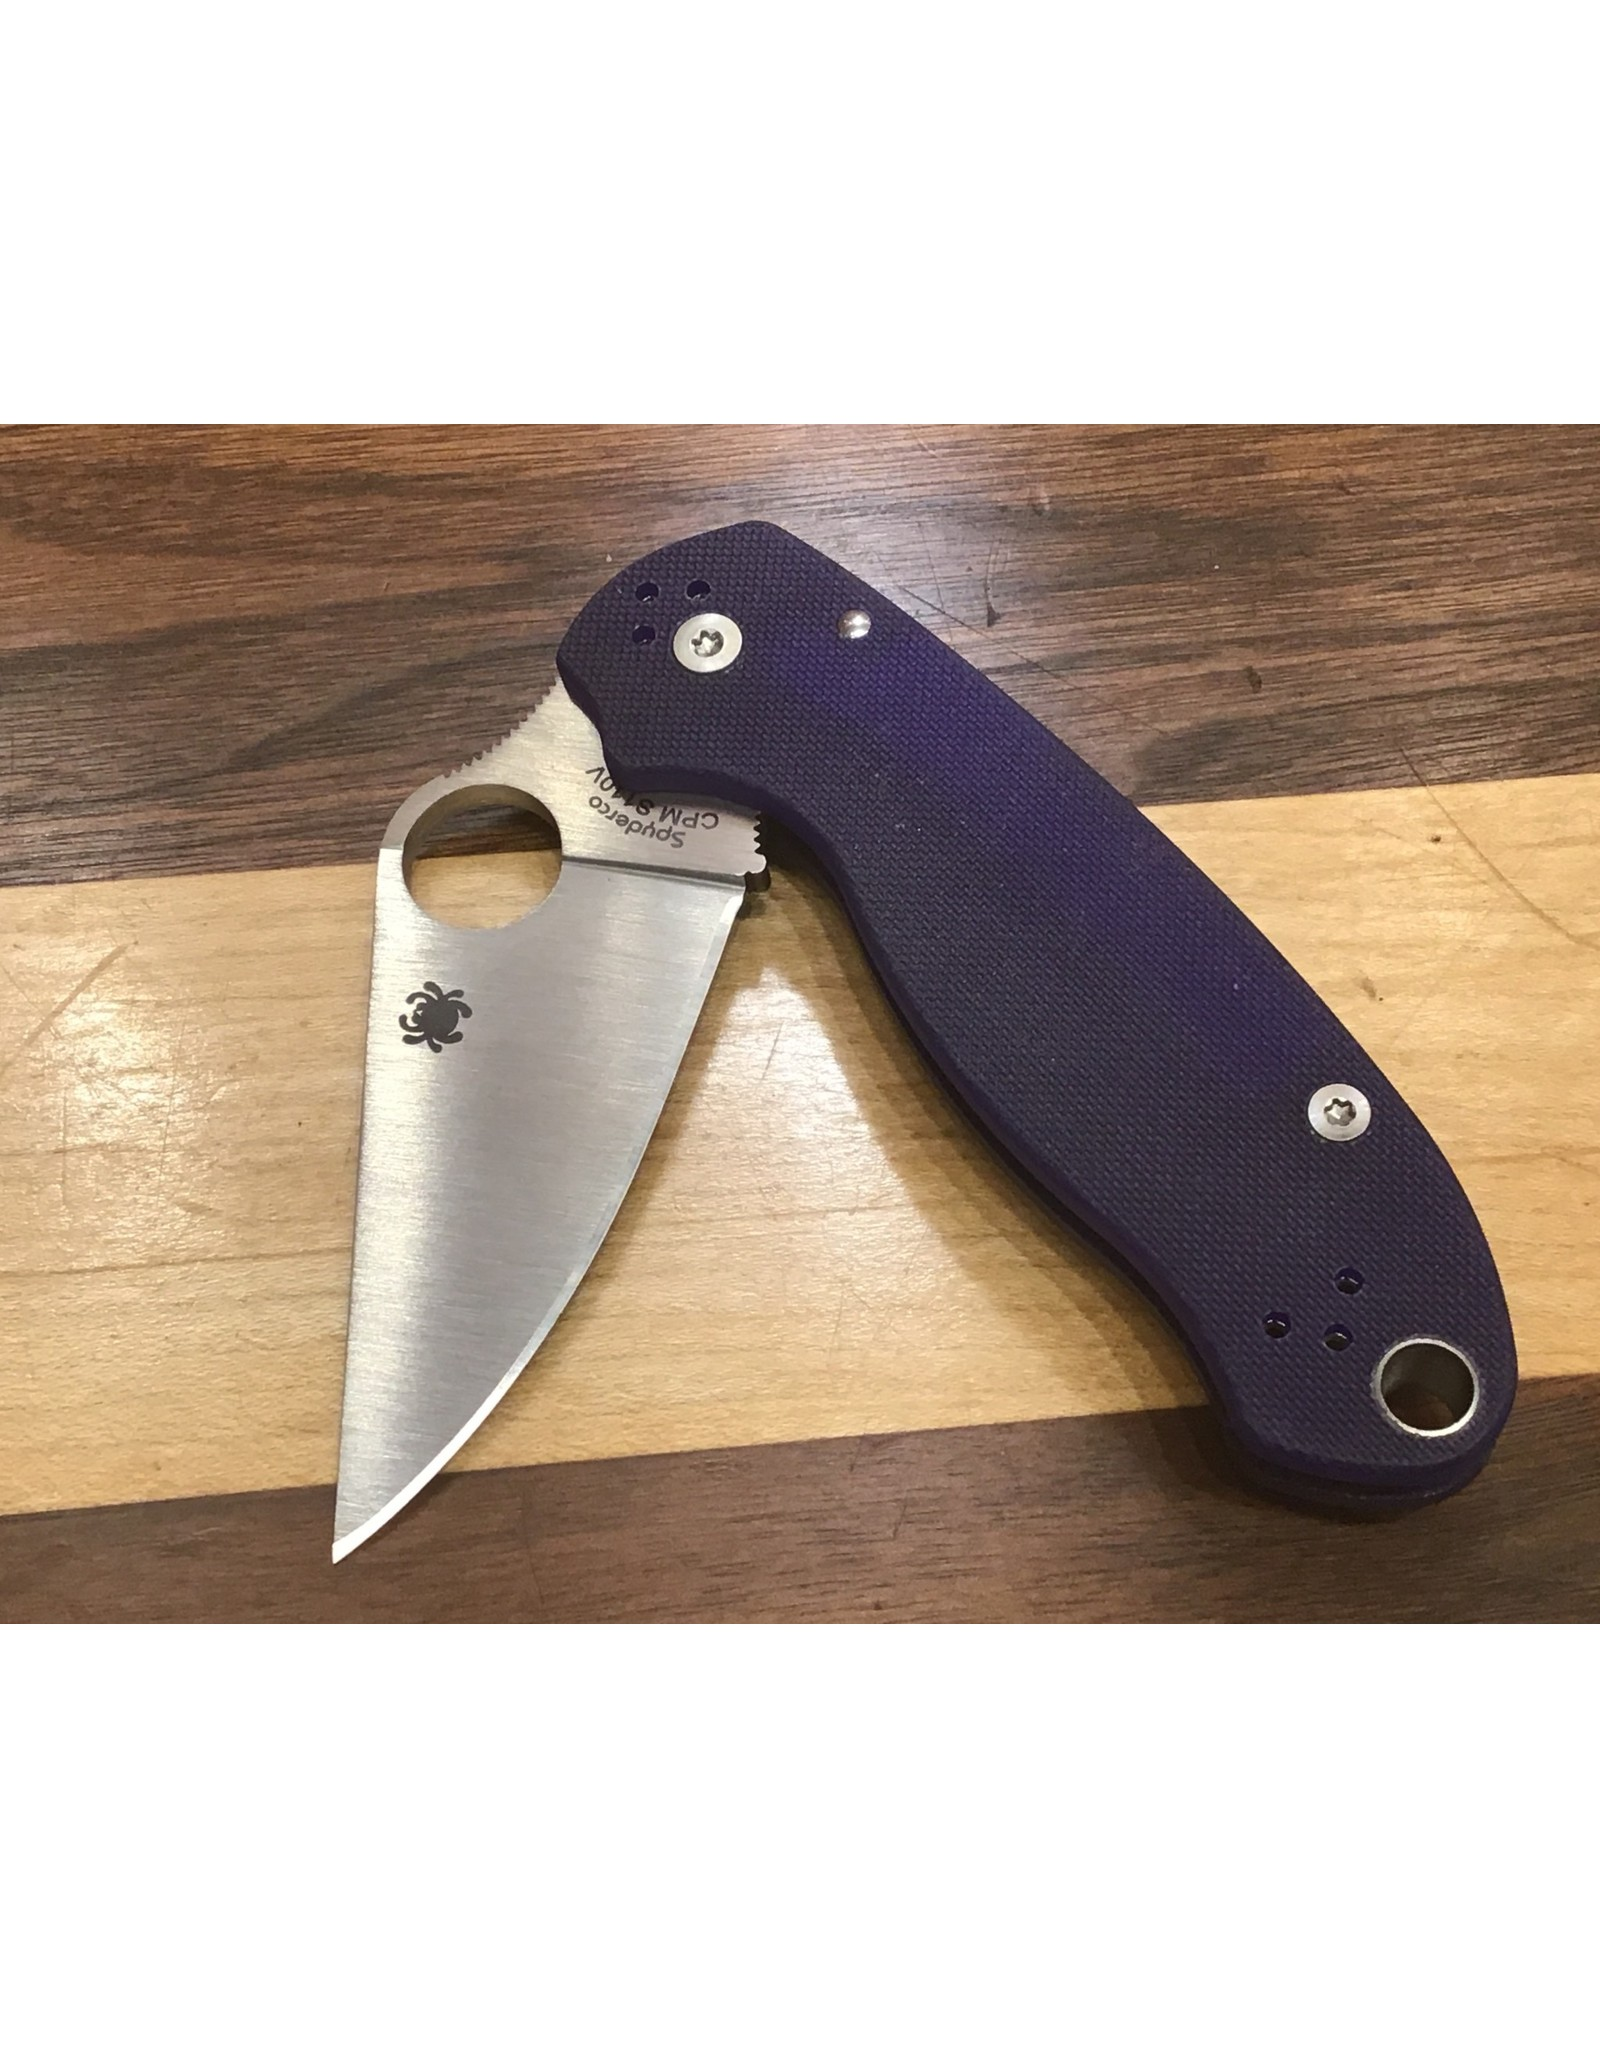 Spyderco Spyderco Para 3 With Dark Blue G10 in CPM S110V steel Compression Lock